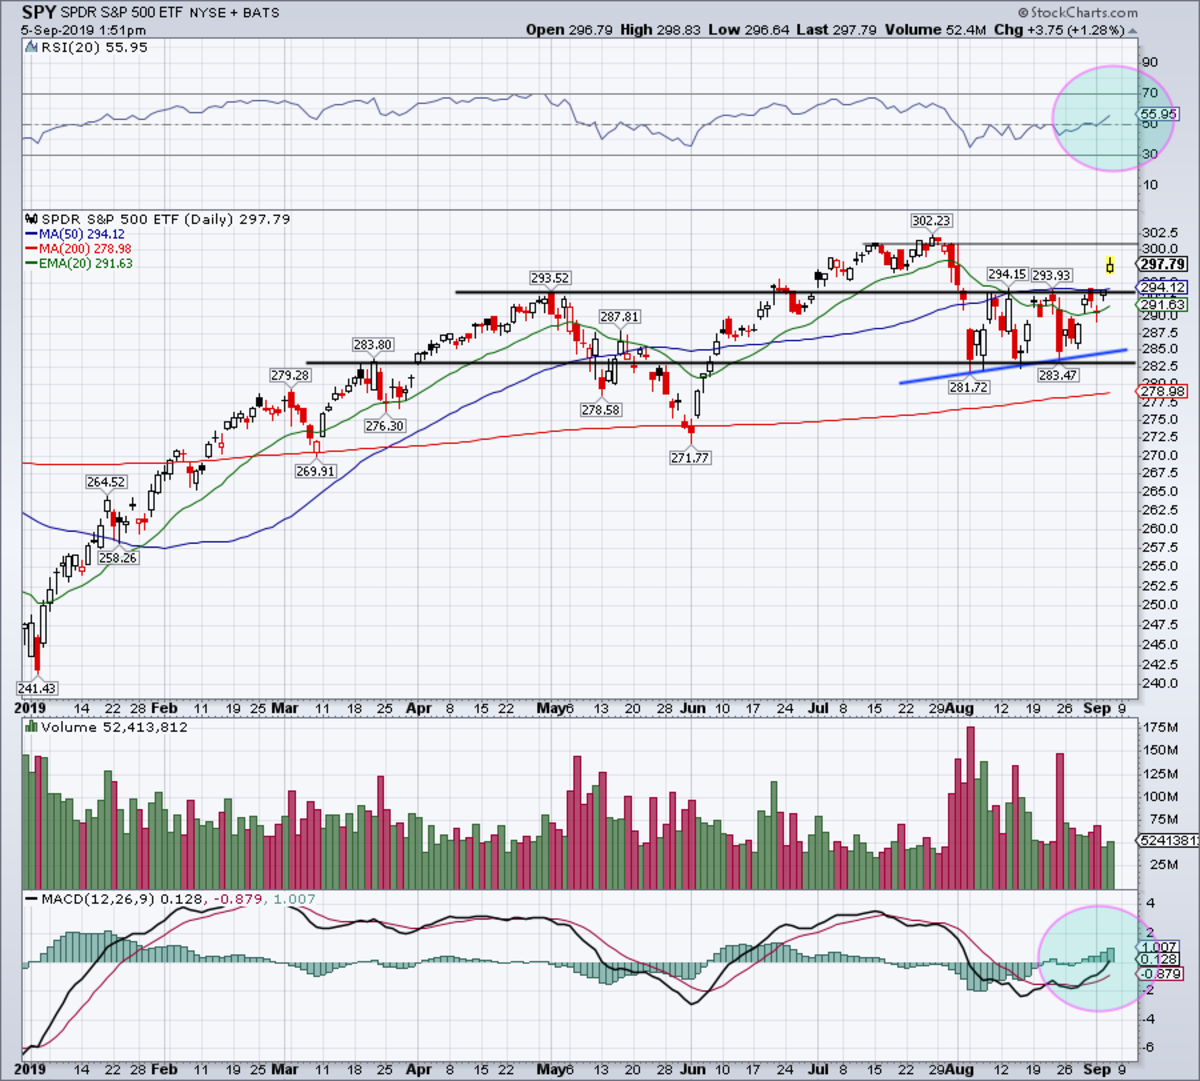 Daily chart of the S&P 500 (SPY).